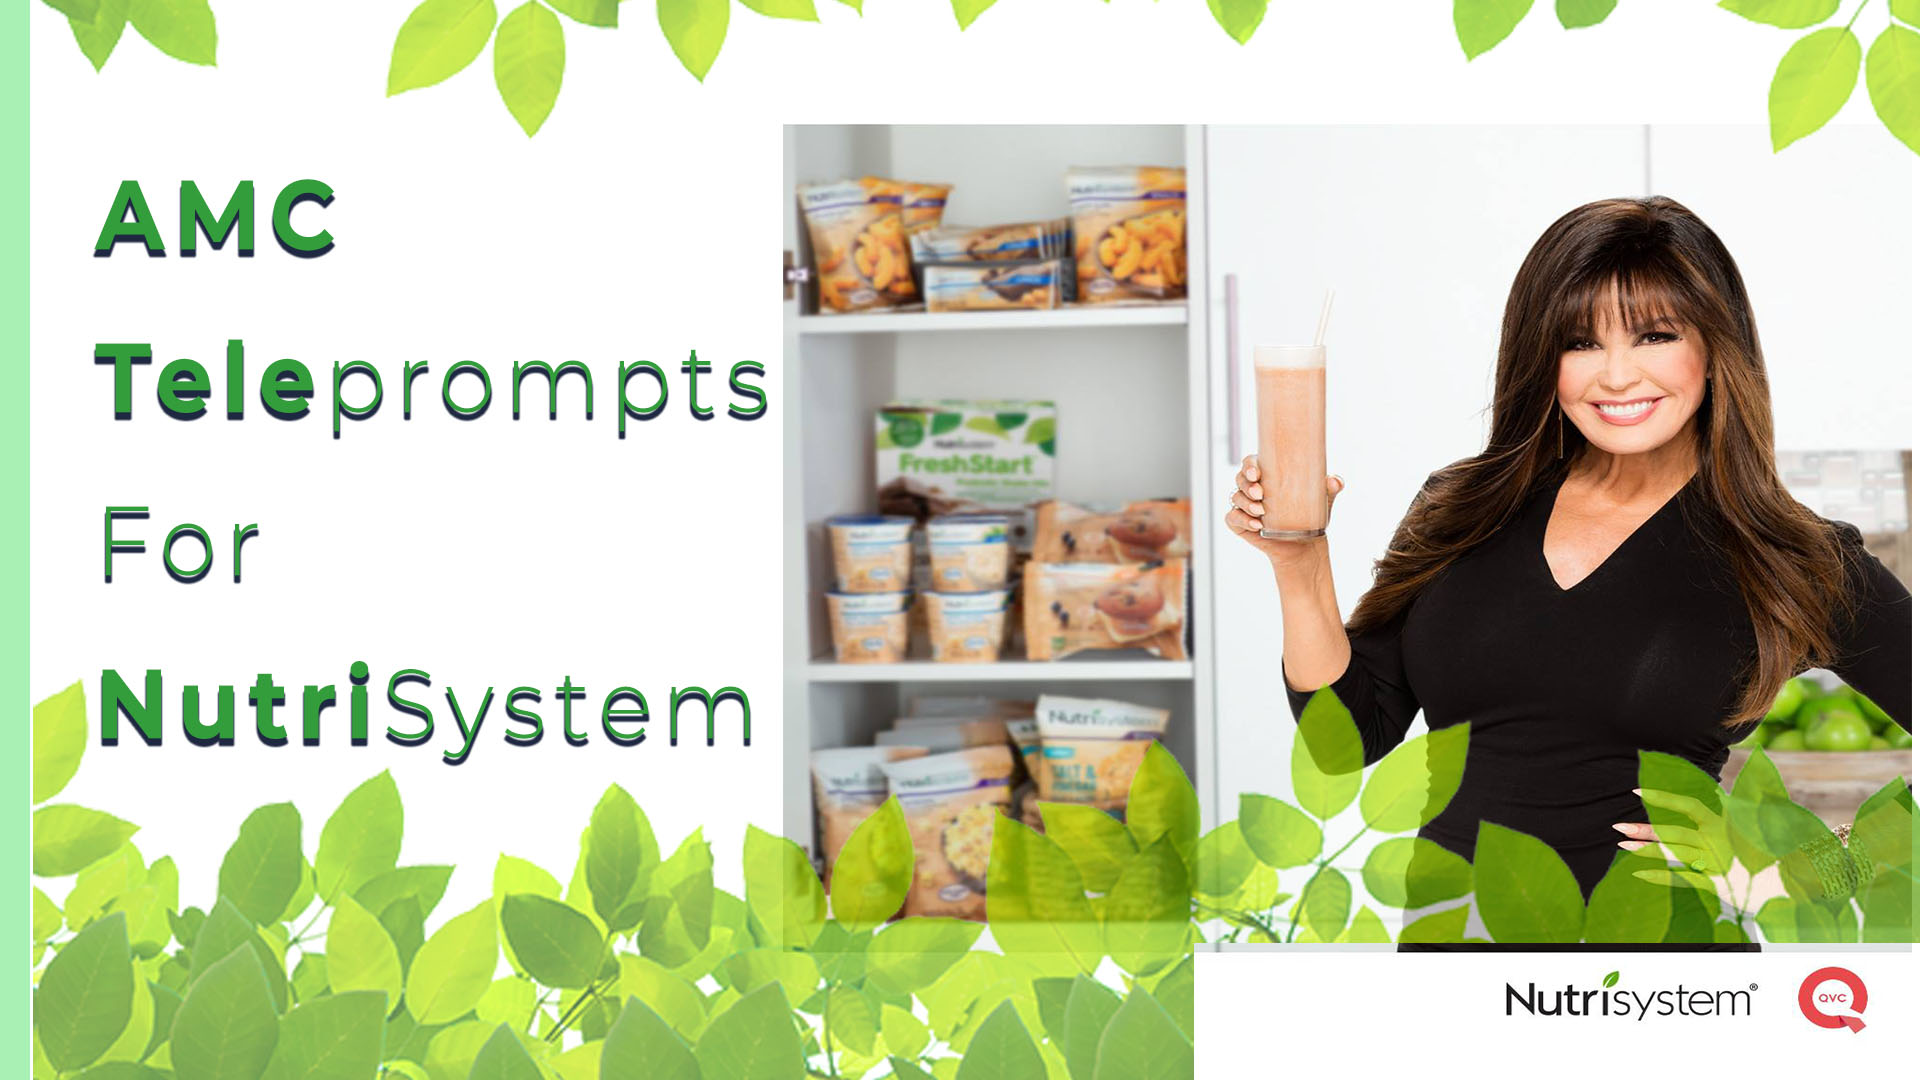 AMC Gets Nutrisystem's New Campaign Up & Running 6